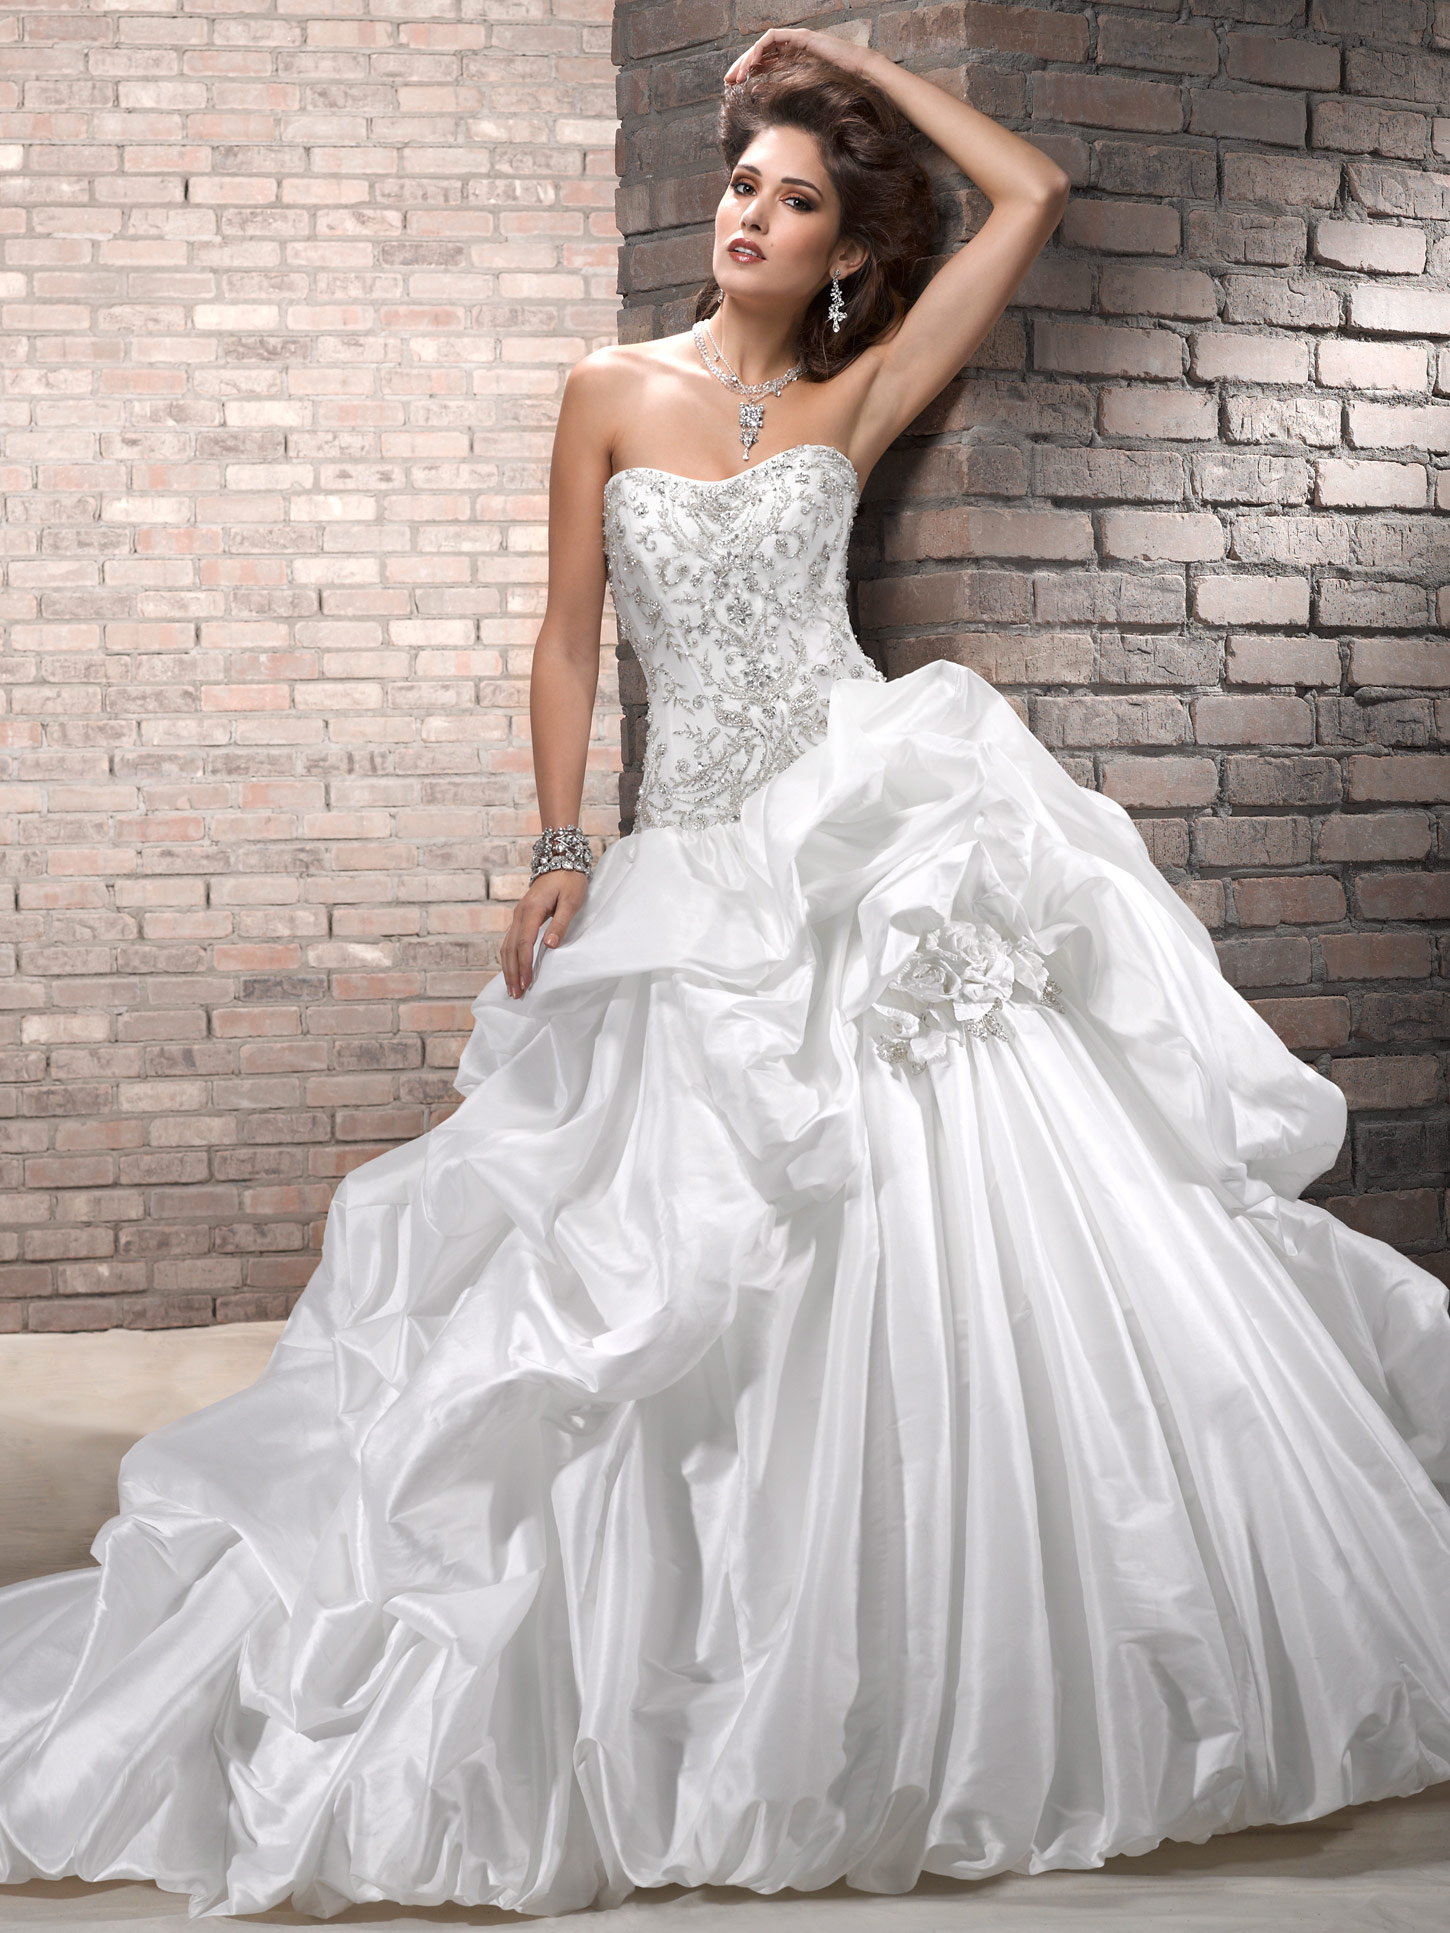 Elegant Ball Gown Wedding Dresses : Looking chic and elegant with strapless ball gown wedding